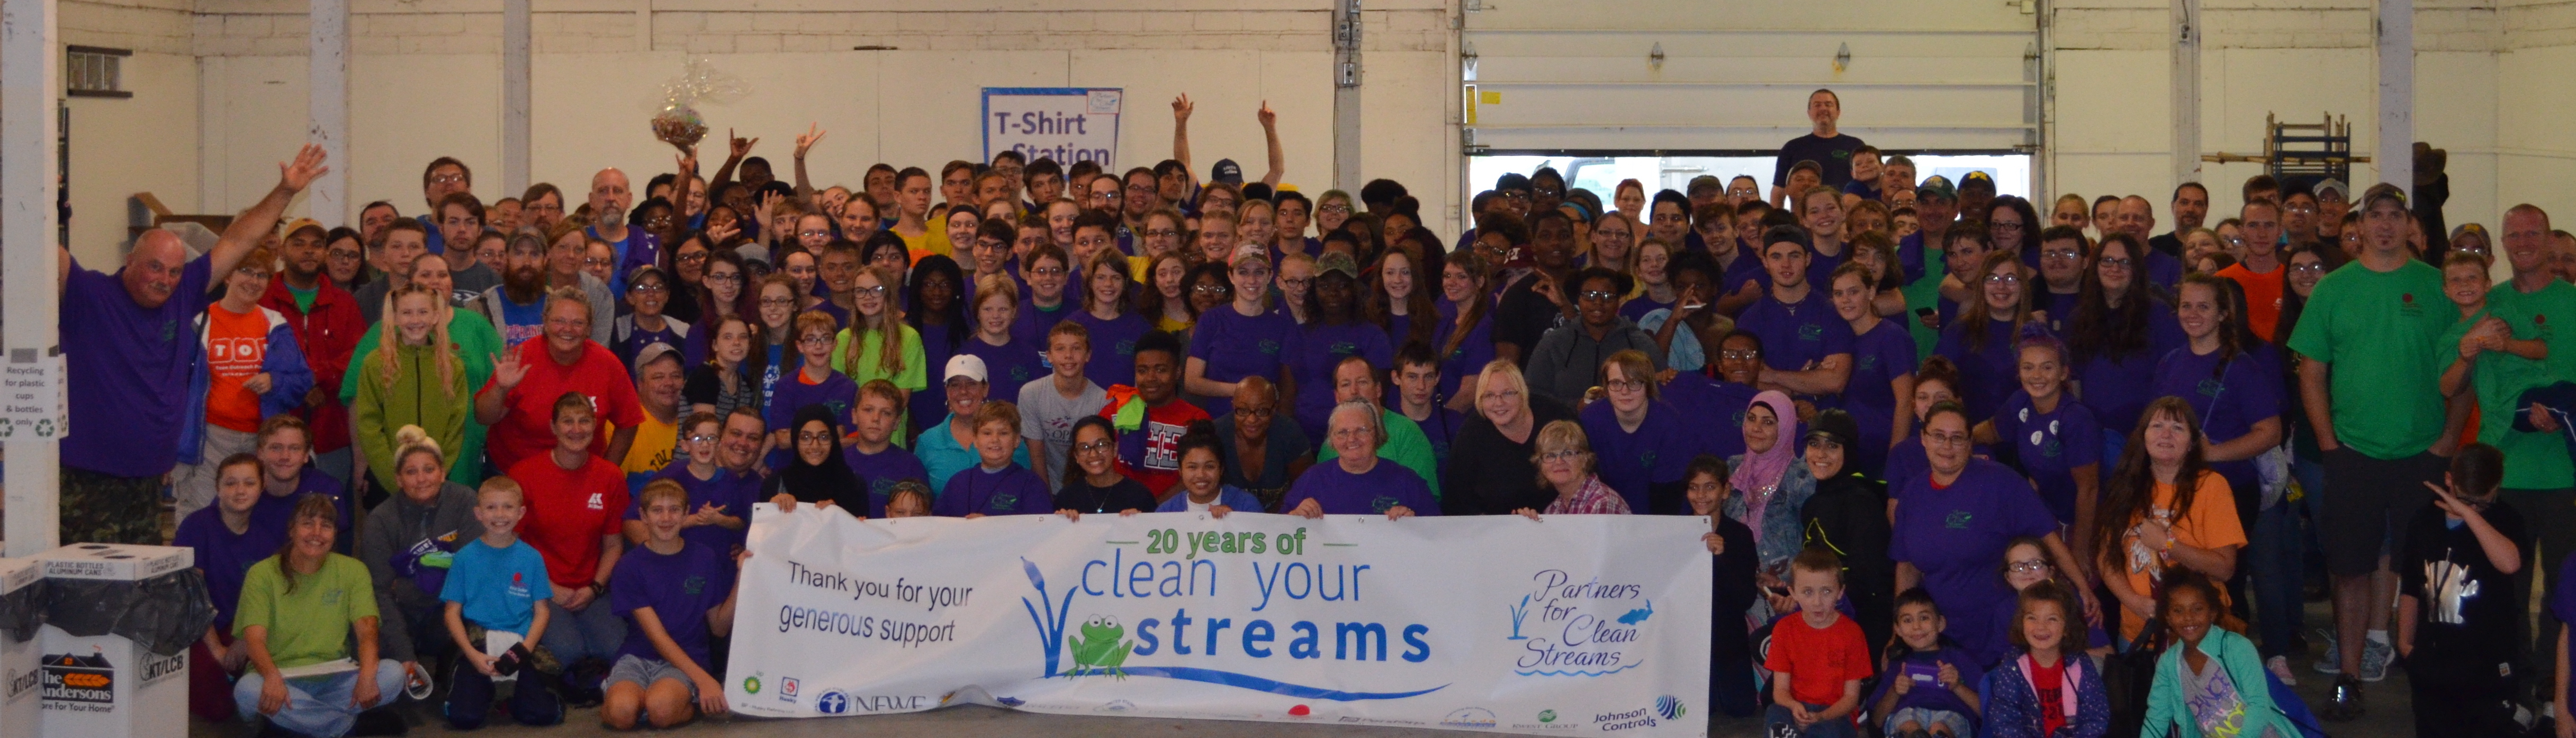 20th Clean Your Streams Day